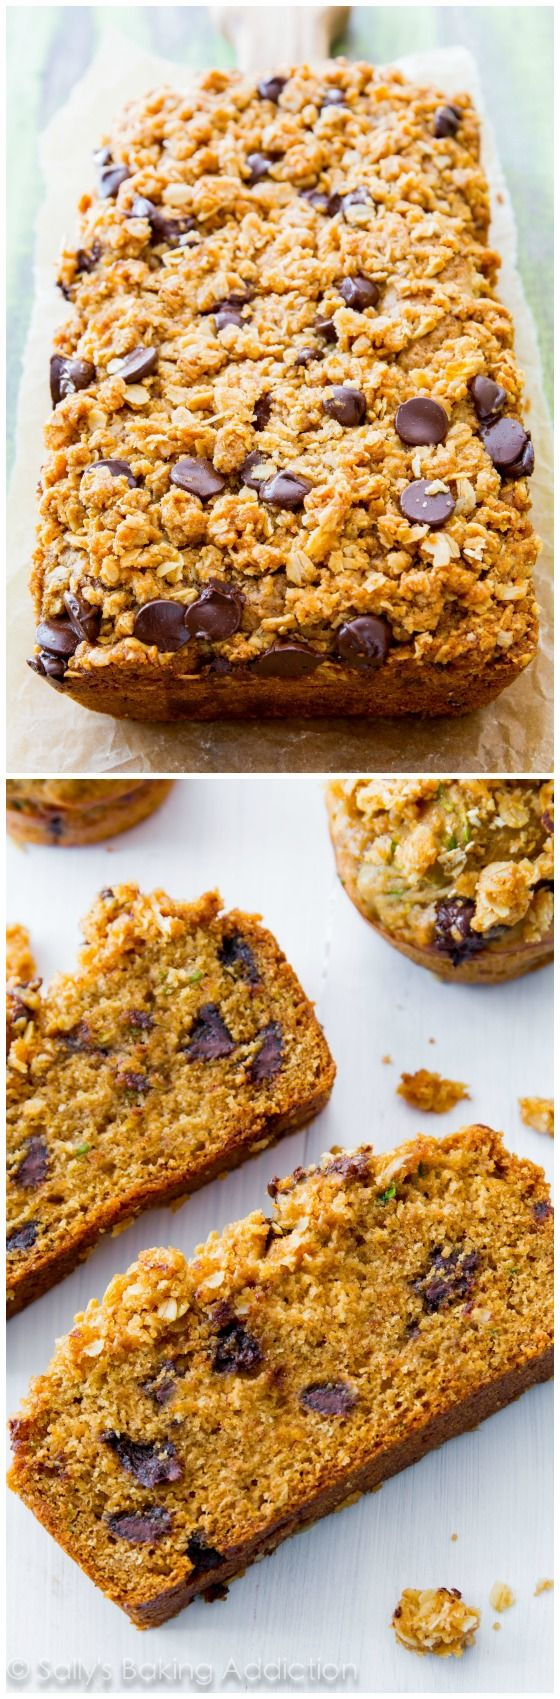 NEW!} Award-Winning Zucchini Bread & Zucchini Bread Muffins. This ...